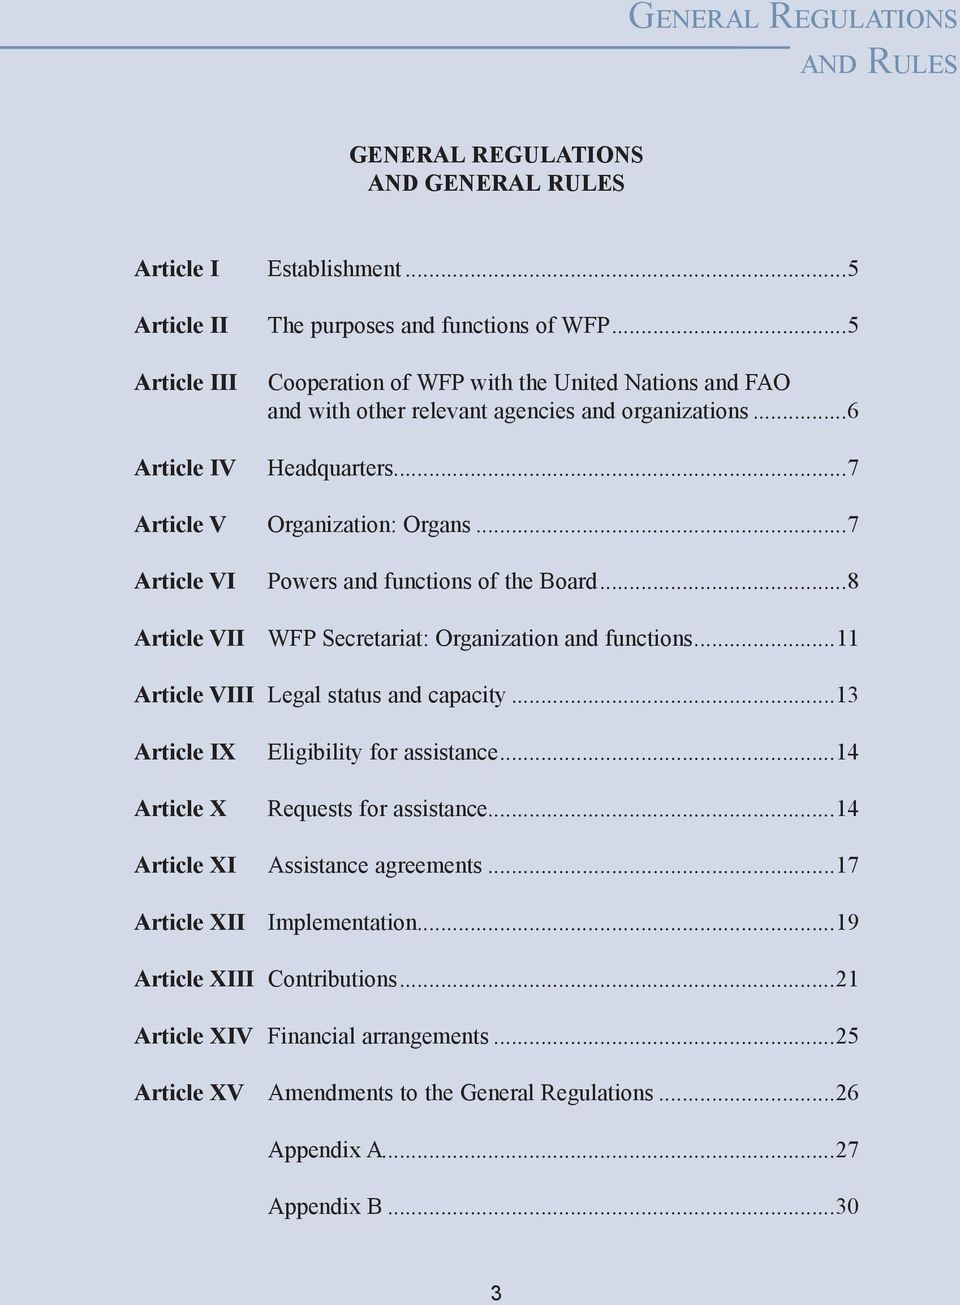 ..8 Article VII WFP Secretariat: Organization and functions...11 Article VIII Legal status and capacity...13 Article IX Article X Article XI Eligibility for assistance...14 Requests for assistance.